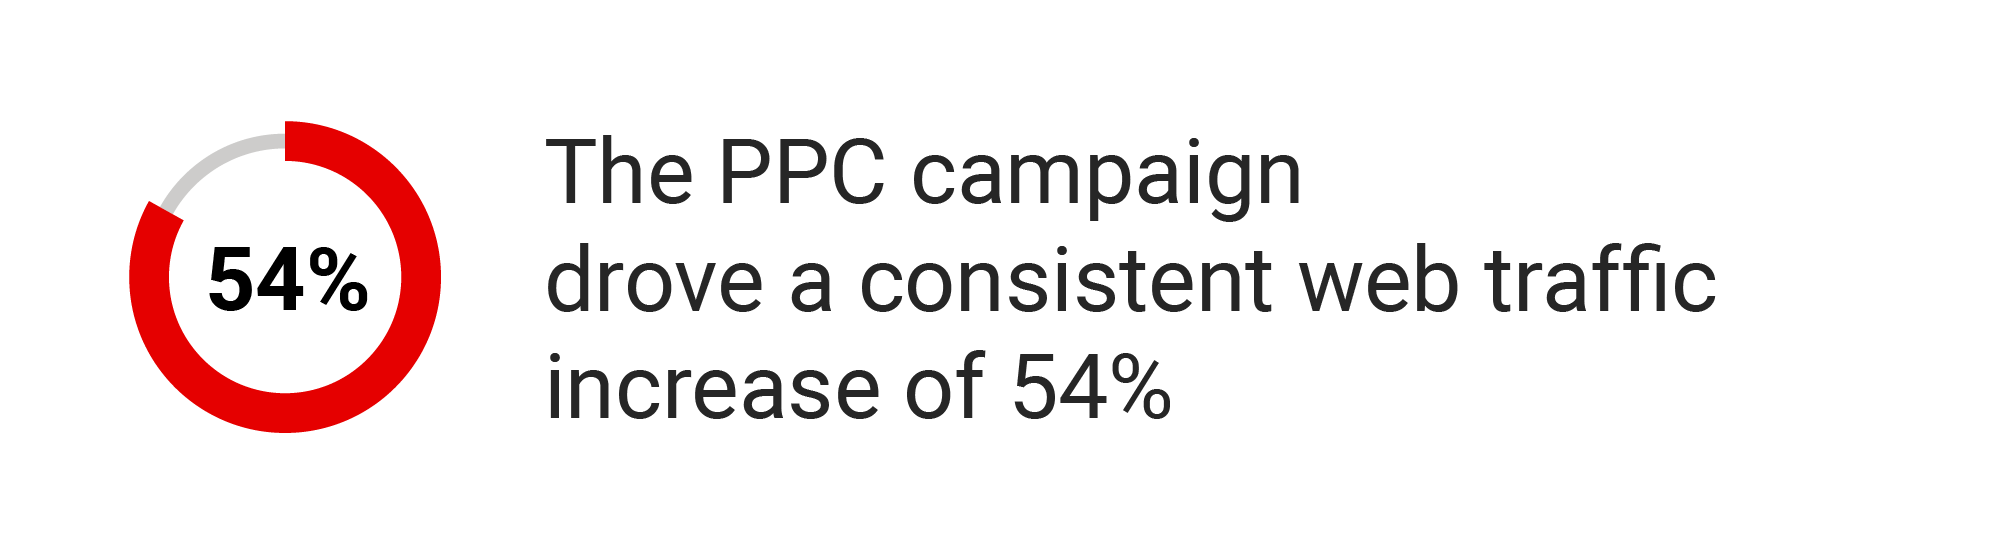 The PPC campaign drove a consistent web traffic increase of 54%